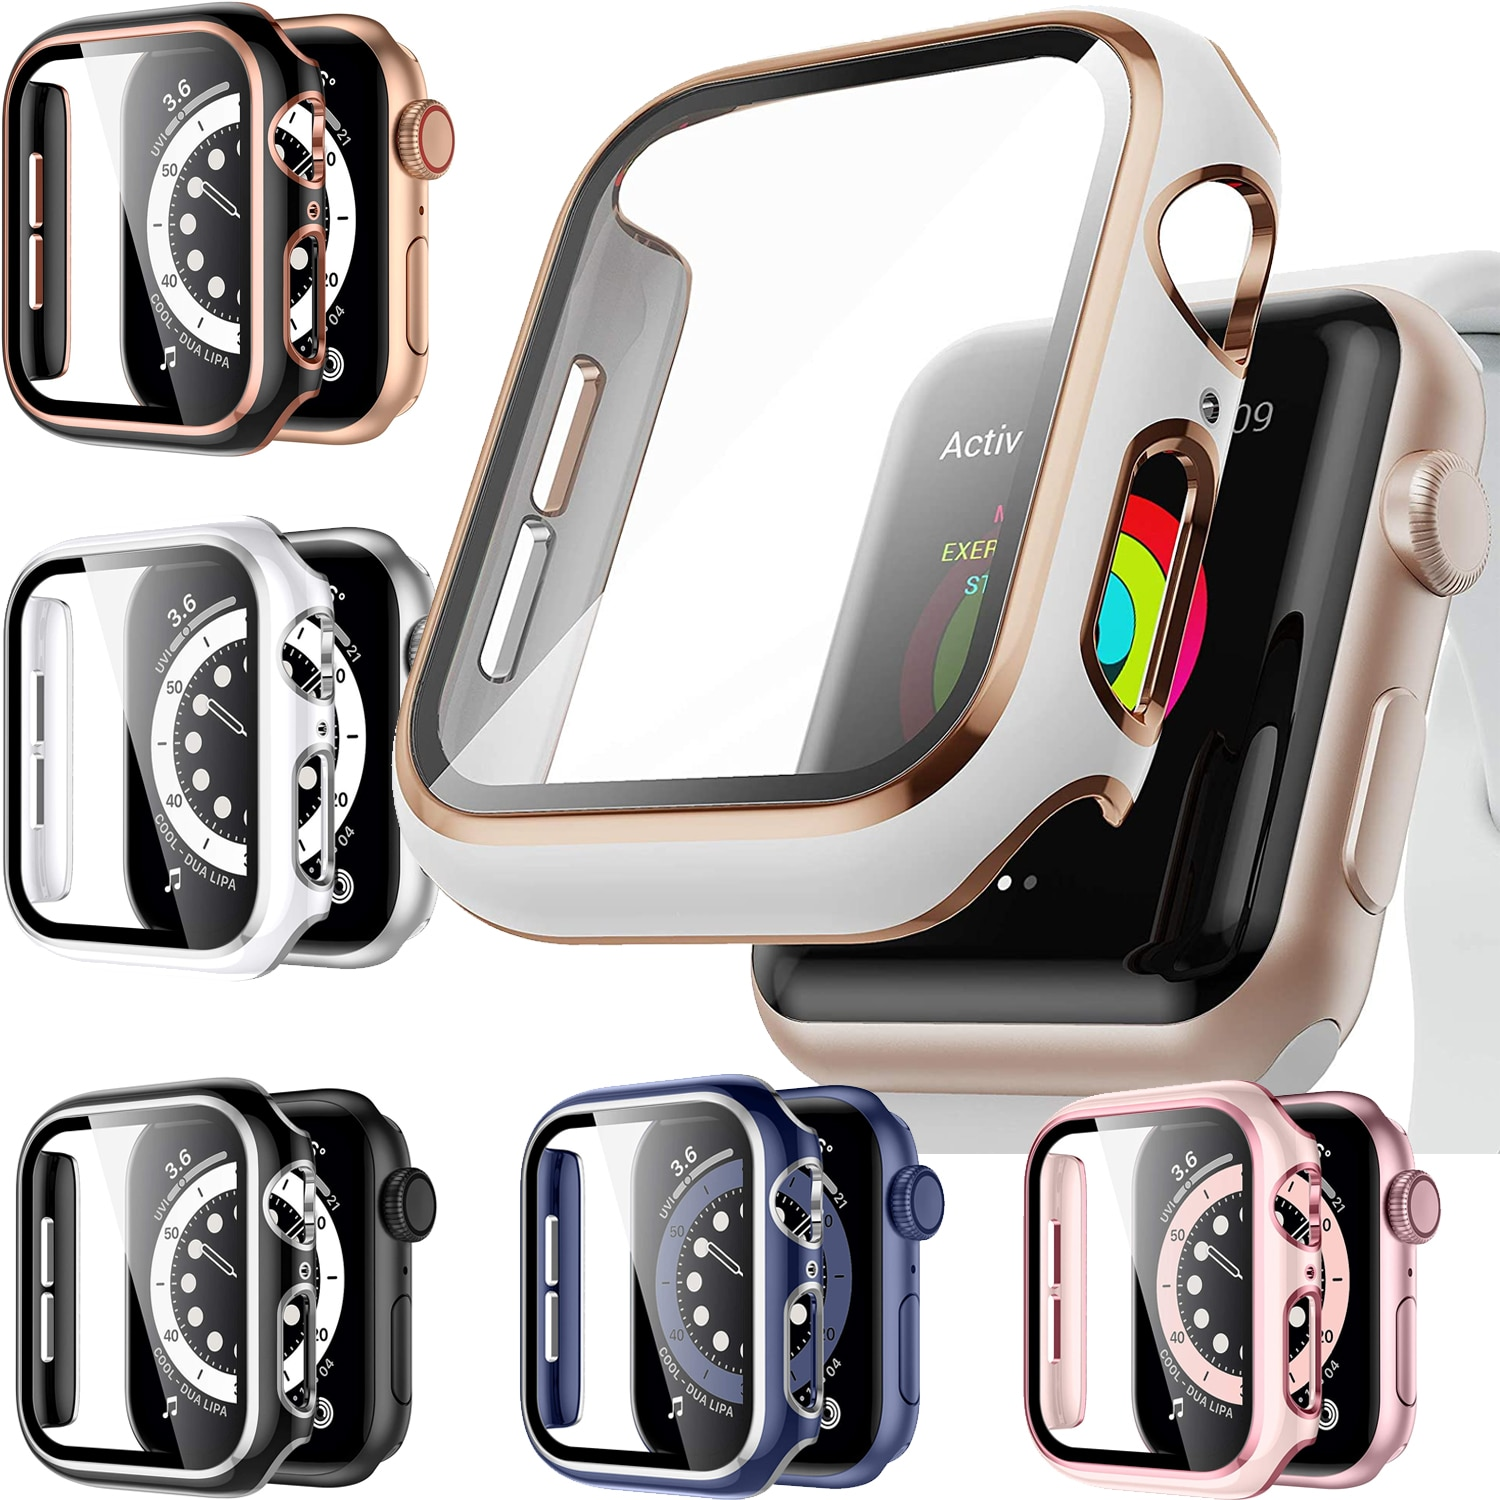 for apple watch tempered glass 44 38 42 40 mm full coverage curved edge frame bumper for i watch series 4 3 2 1 screen protector Full Screen Protector Bumper Frame Case for Apple Watch 6/SE/5/4/3/2/1 Cover Slim Tempered Glass Film for iWatch 4/5